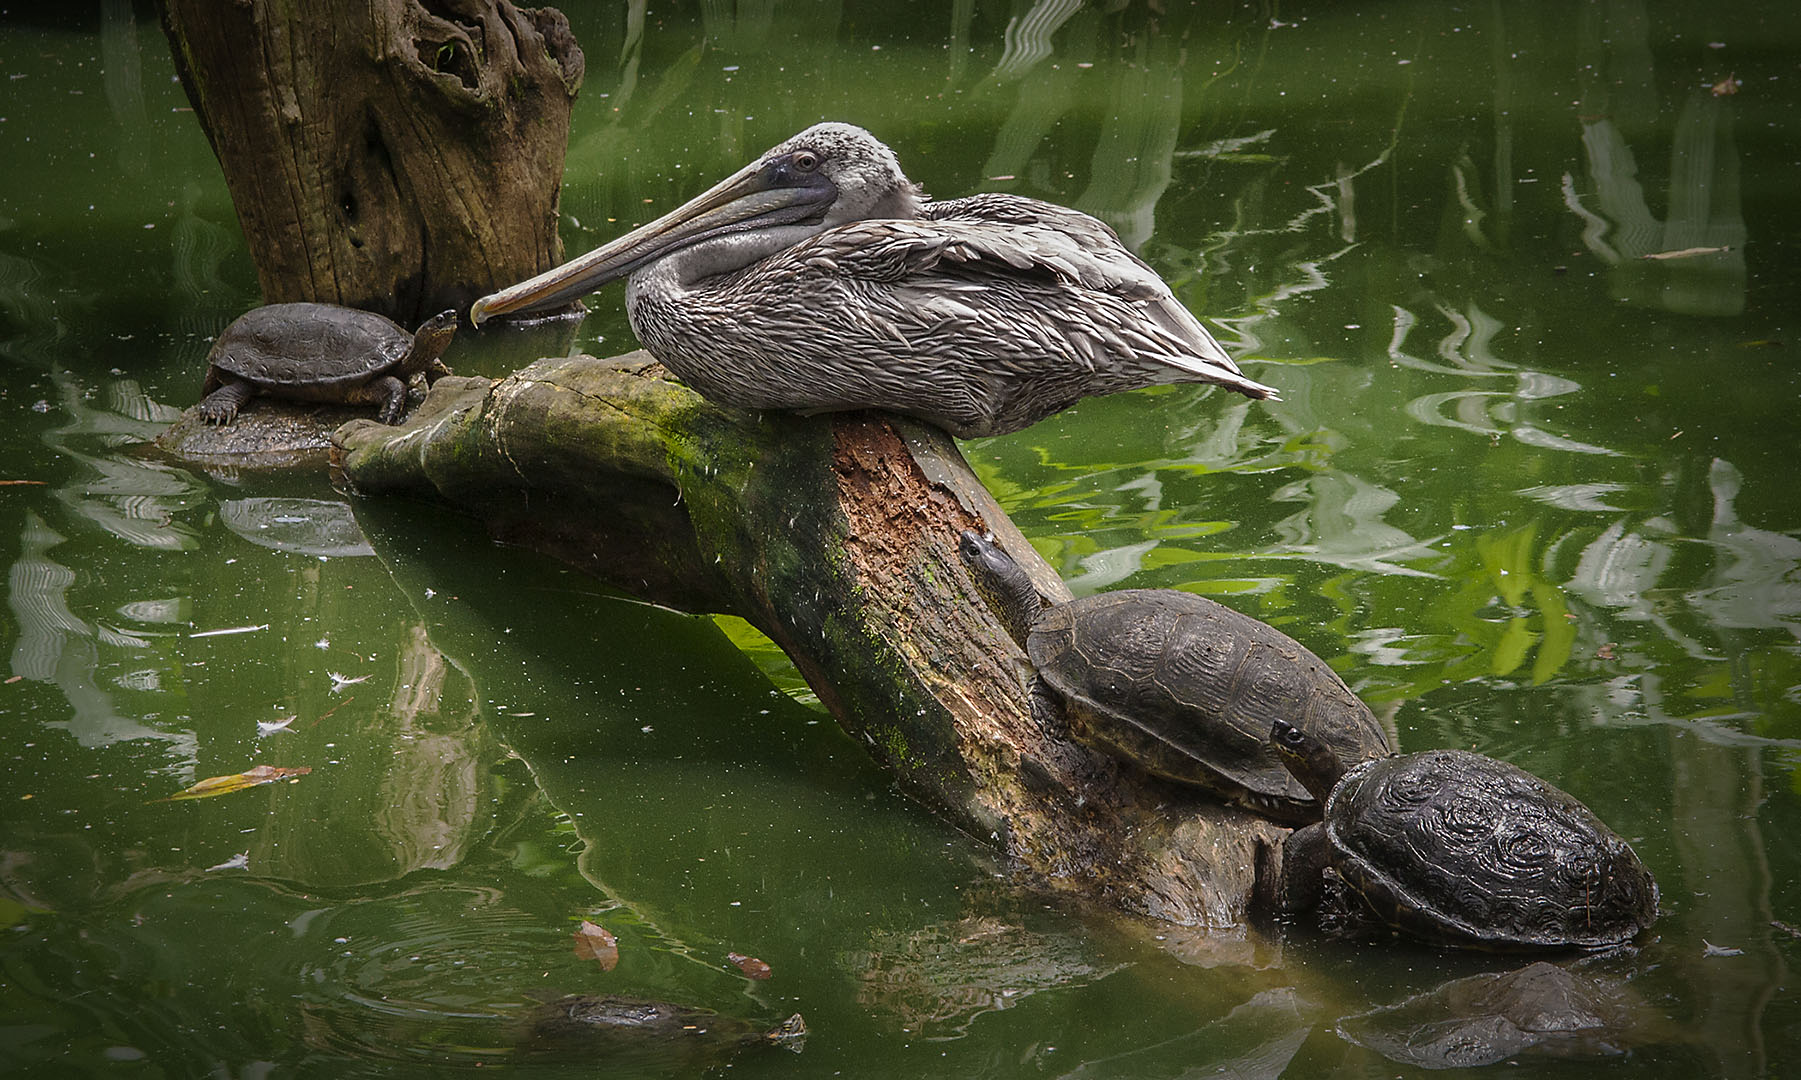 Pelican and Turtles Zooave.jpg